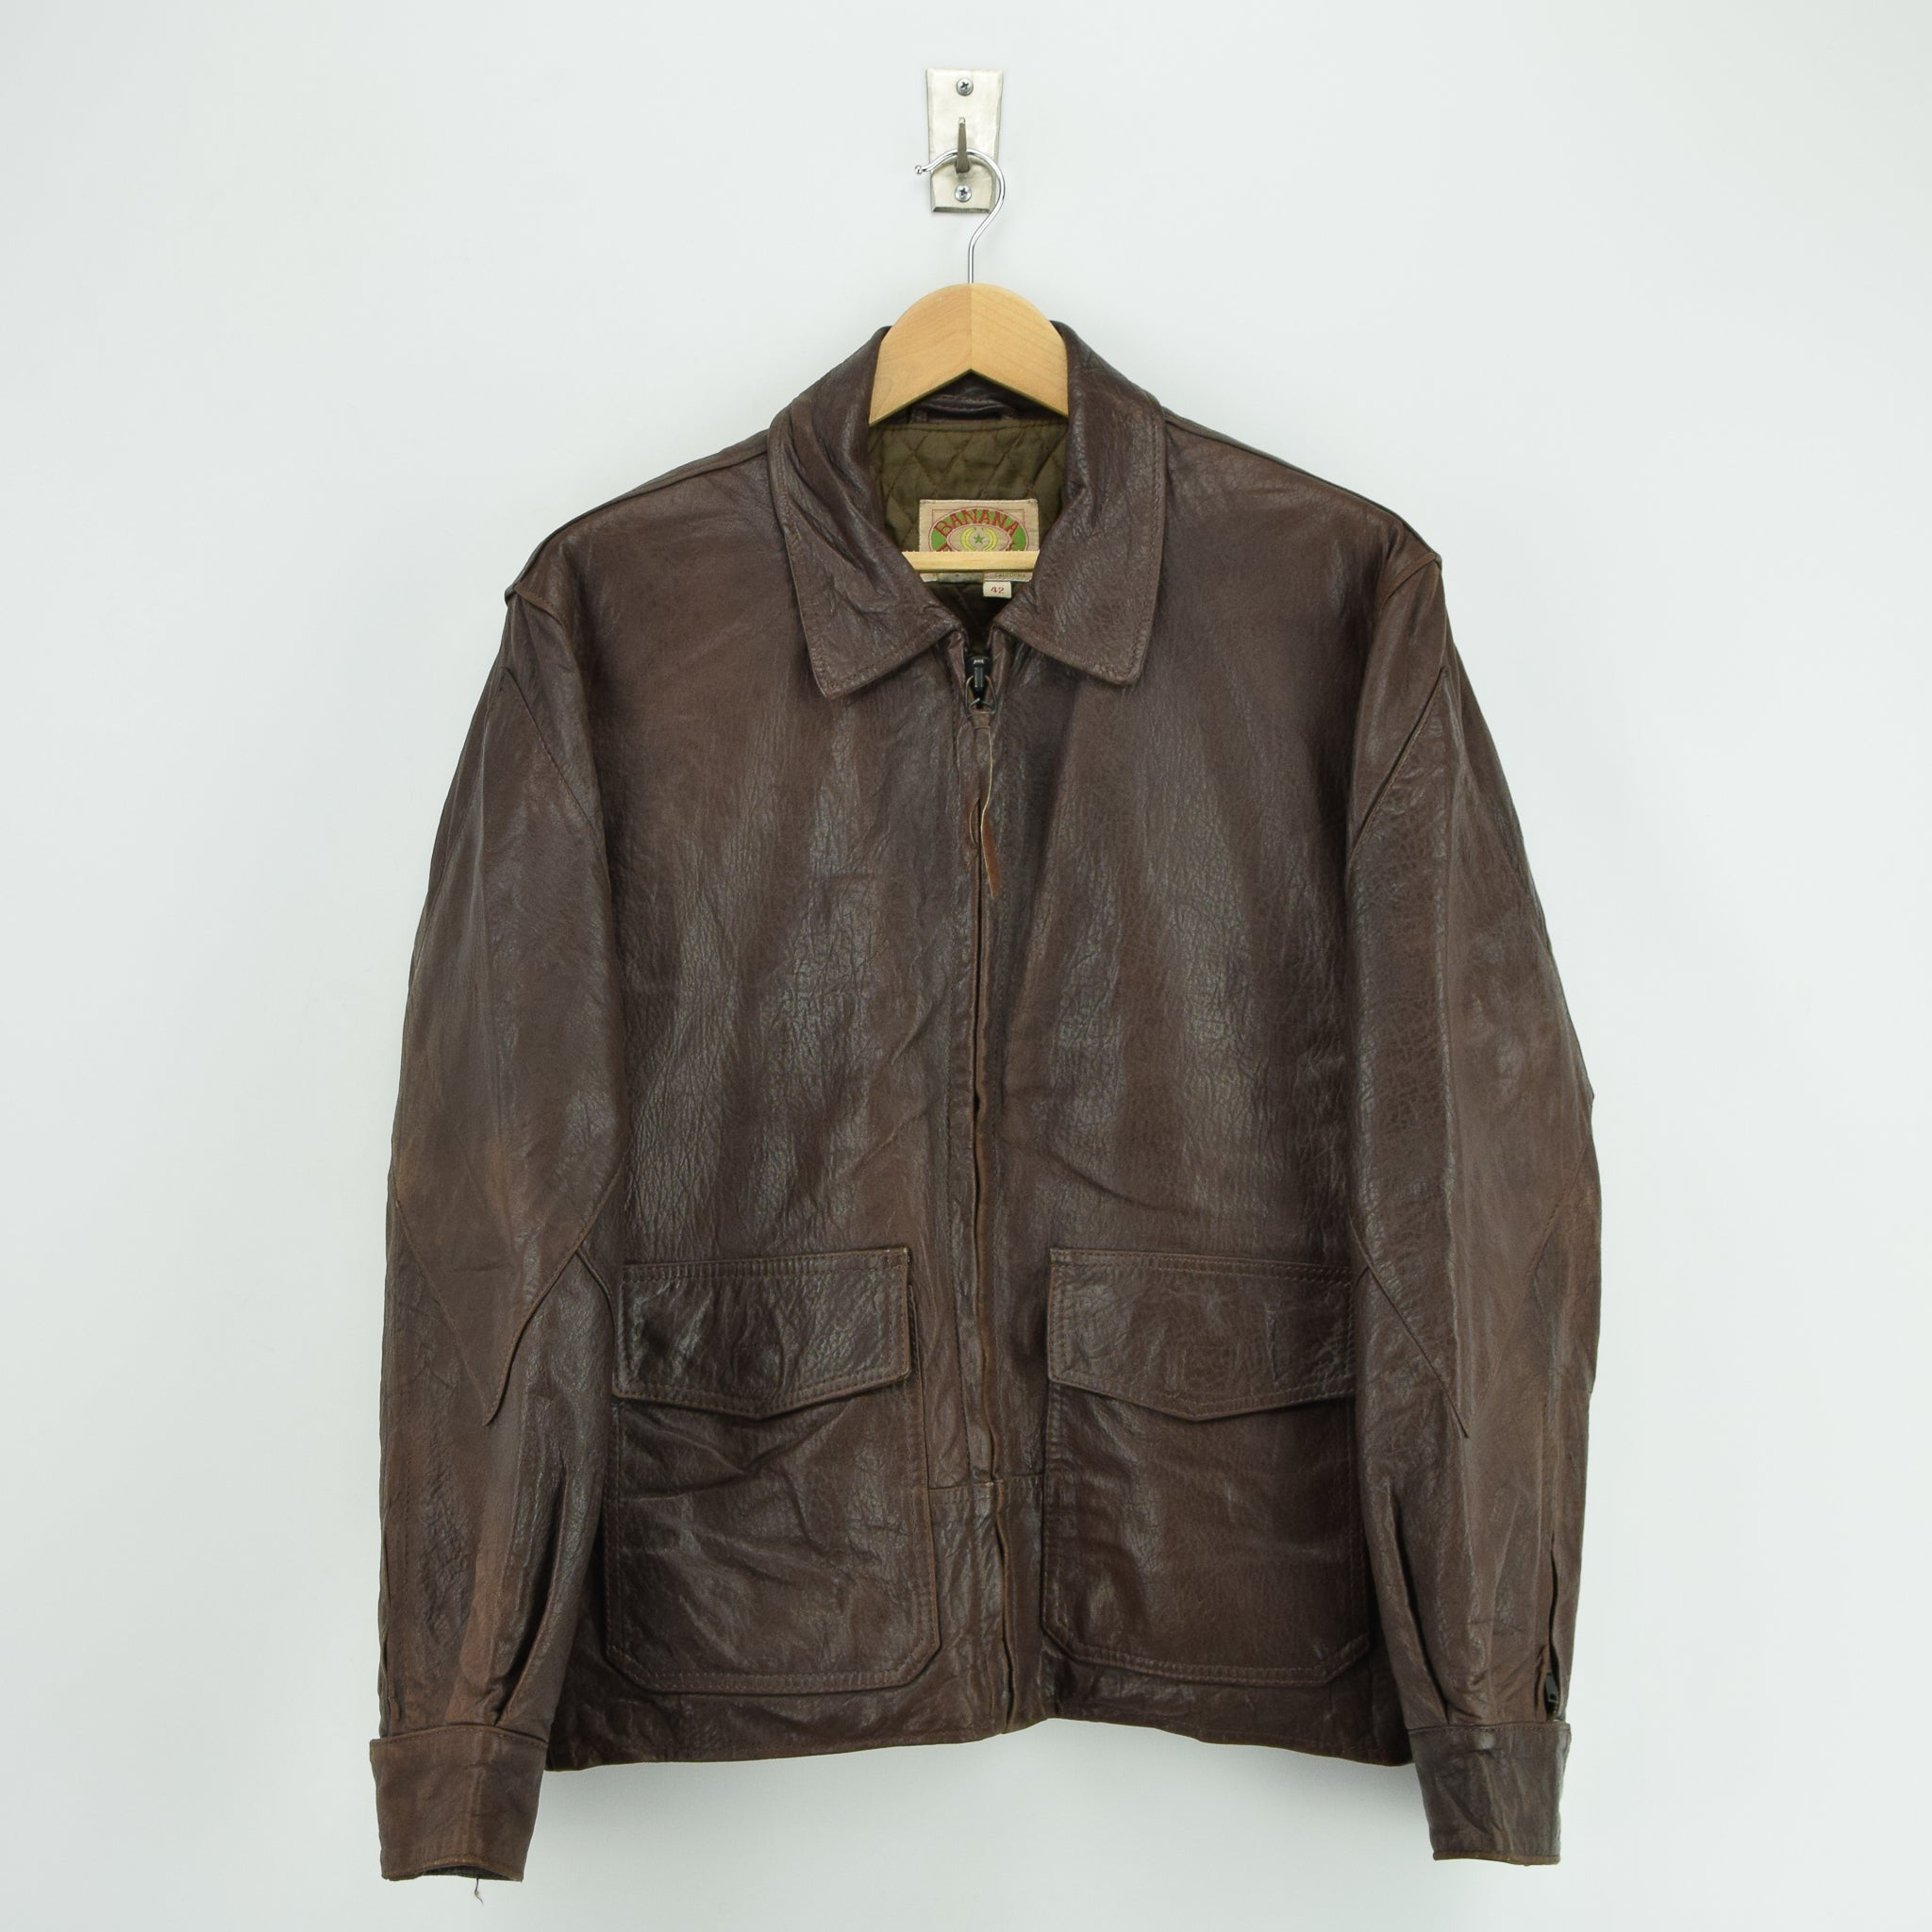 Vintage Banana Republic Brown Leather Bomber Biker Style Jacket Made in USA L front]